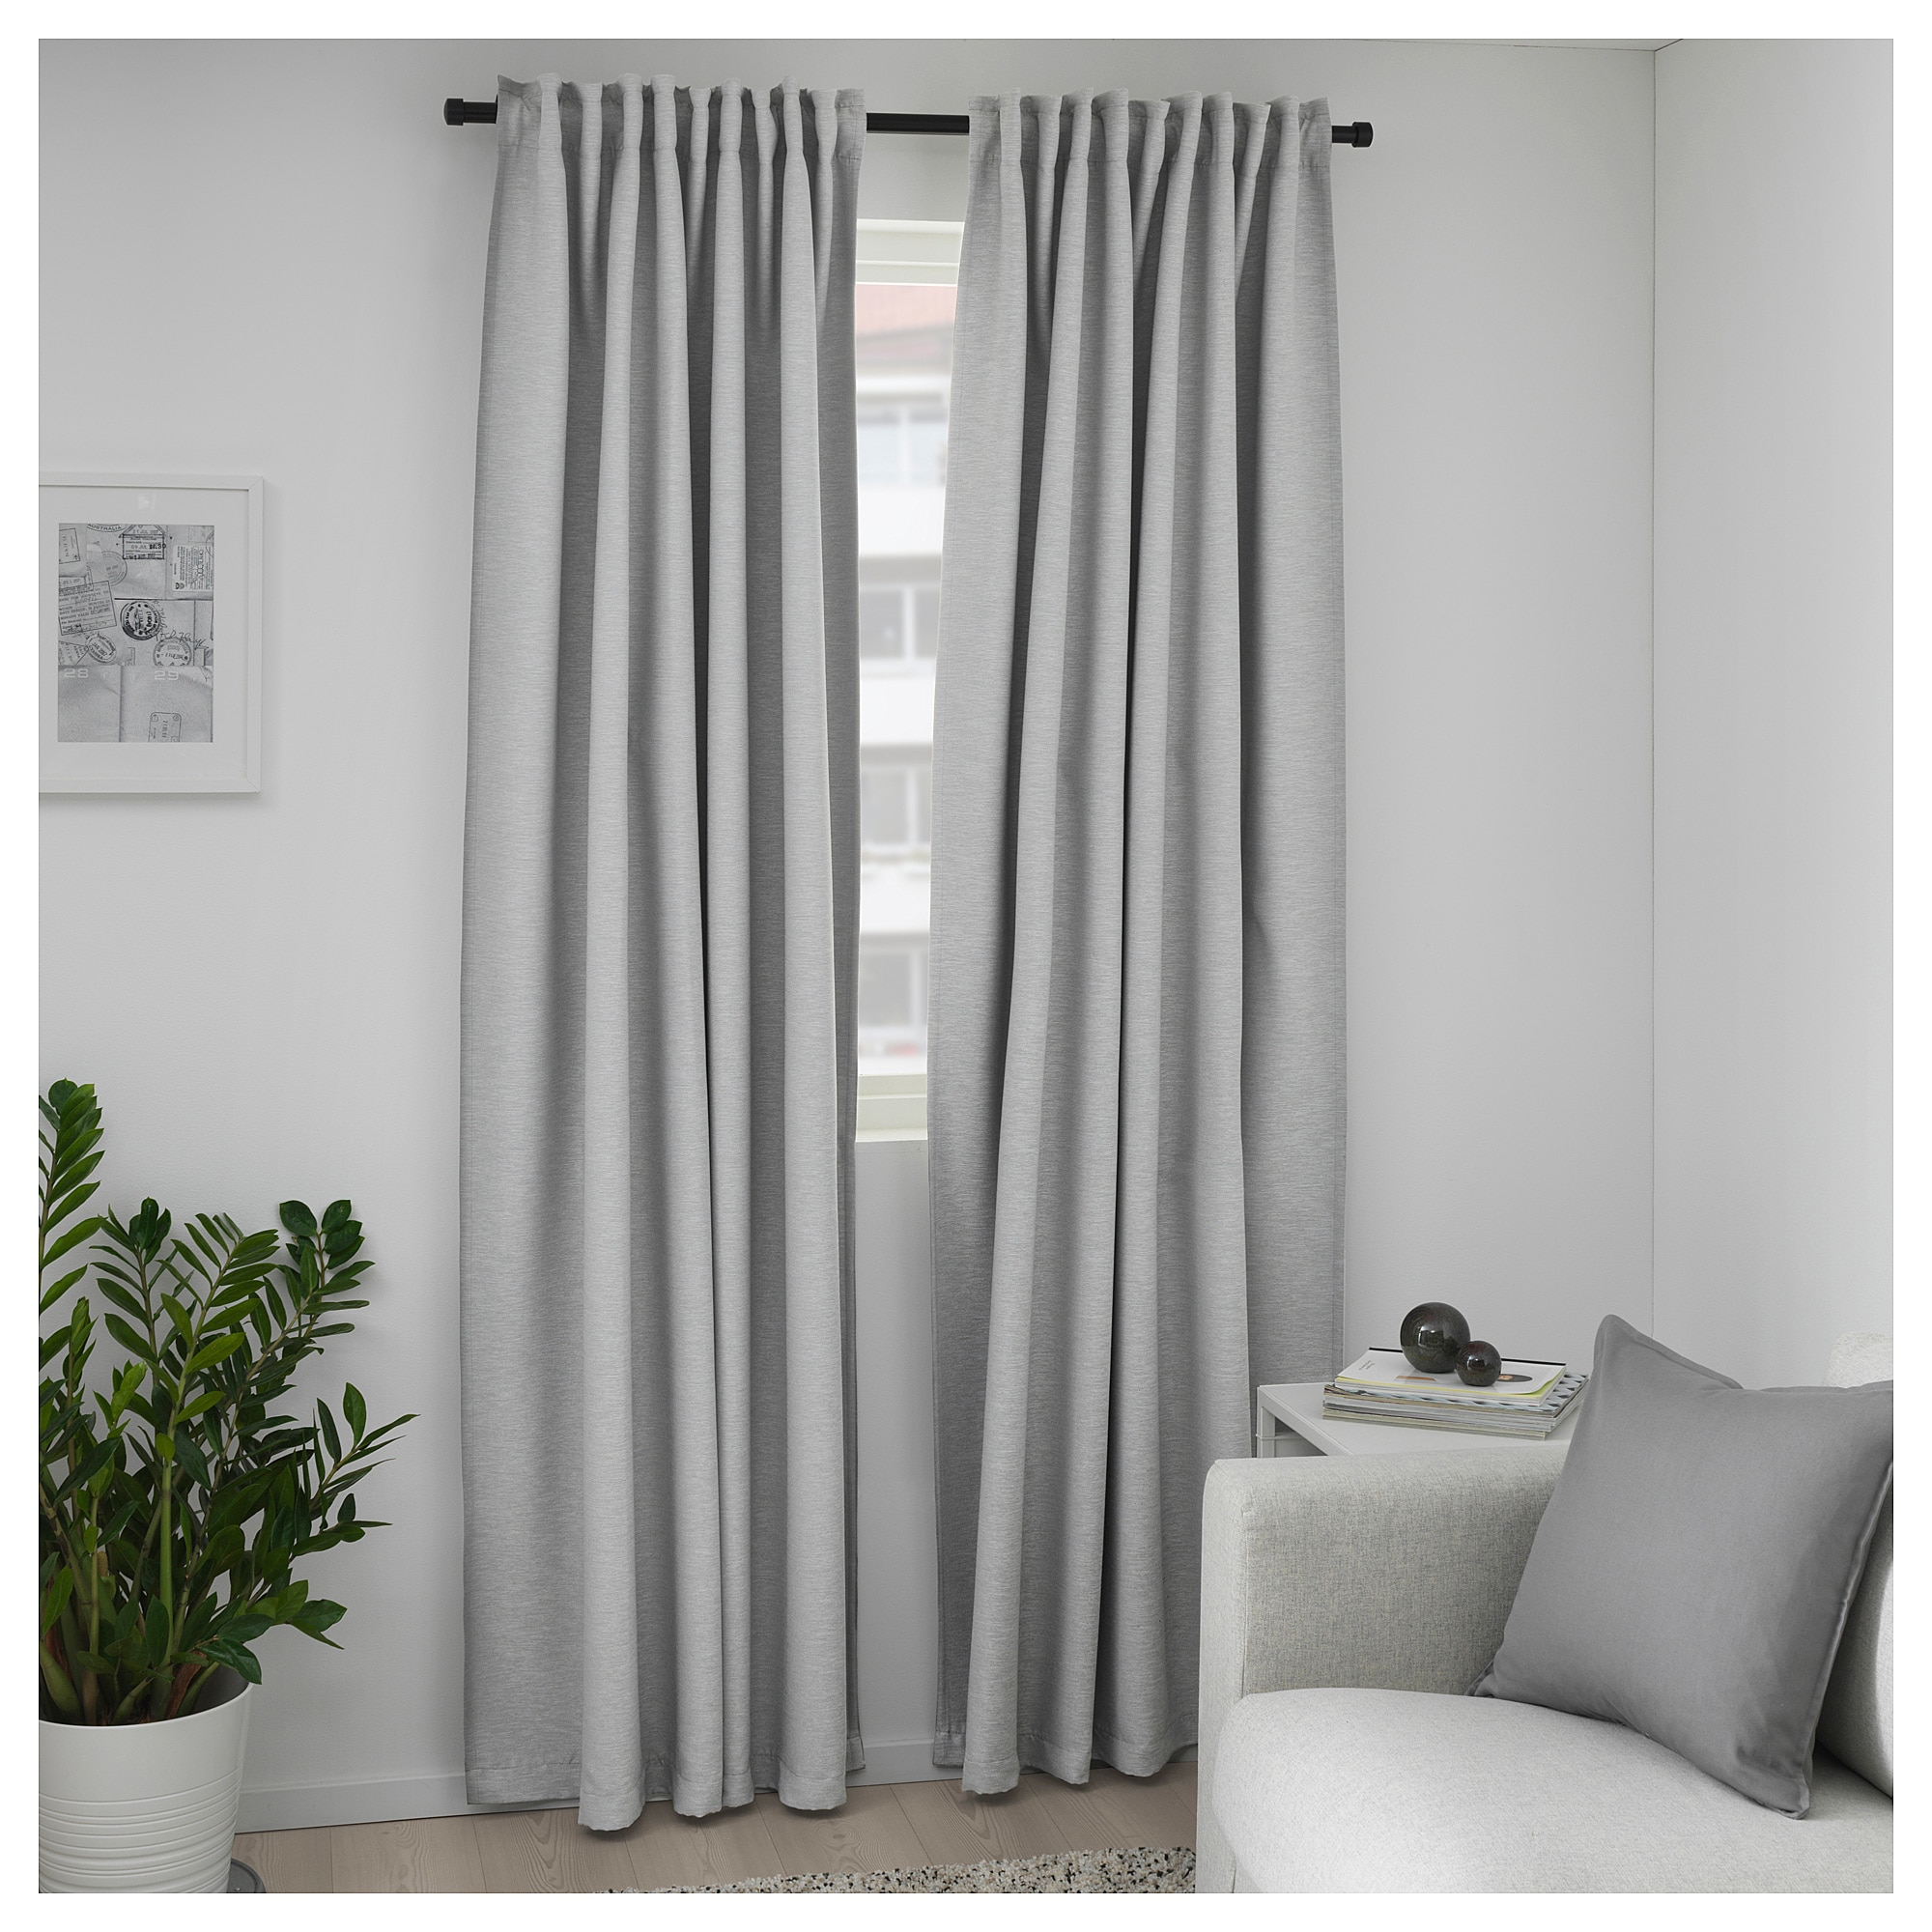 Vilborg Room Darkening Curtains 1 Pair Gray 57x98 Ikea Grey Curtains Living Room Room Darkening Curtains Room Darkening